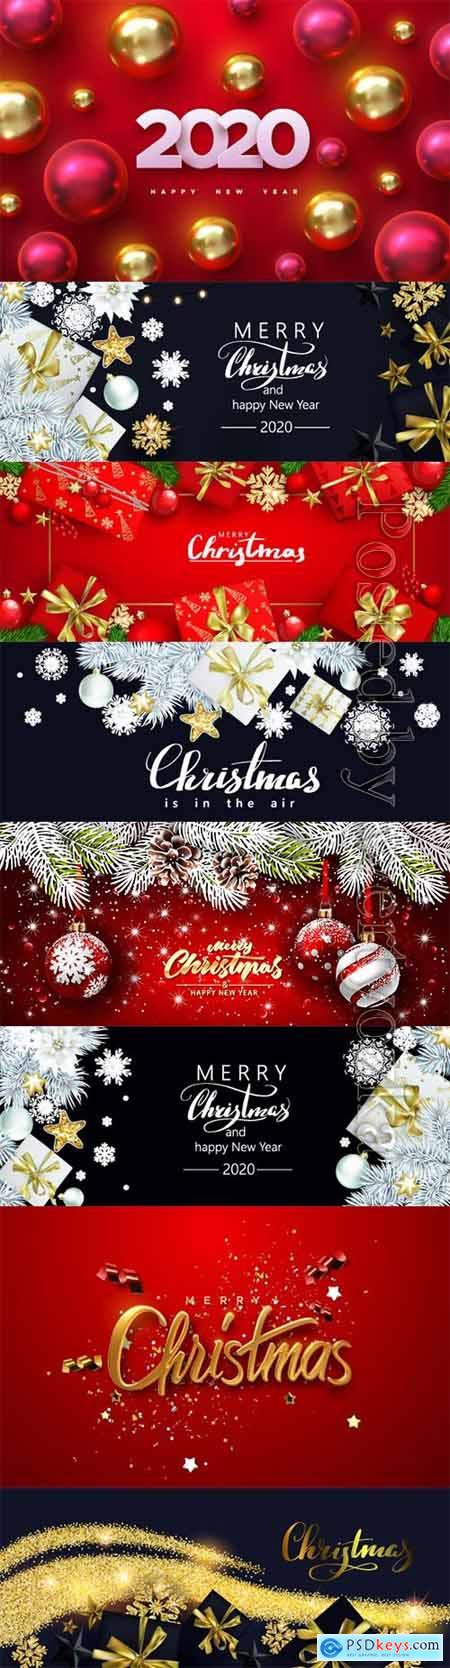 Christmas banner with gift boxes and golden snowflakes